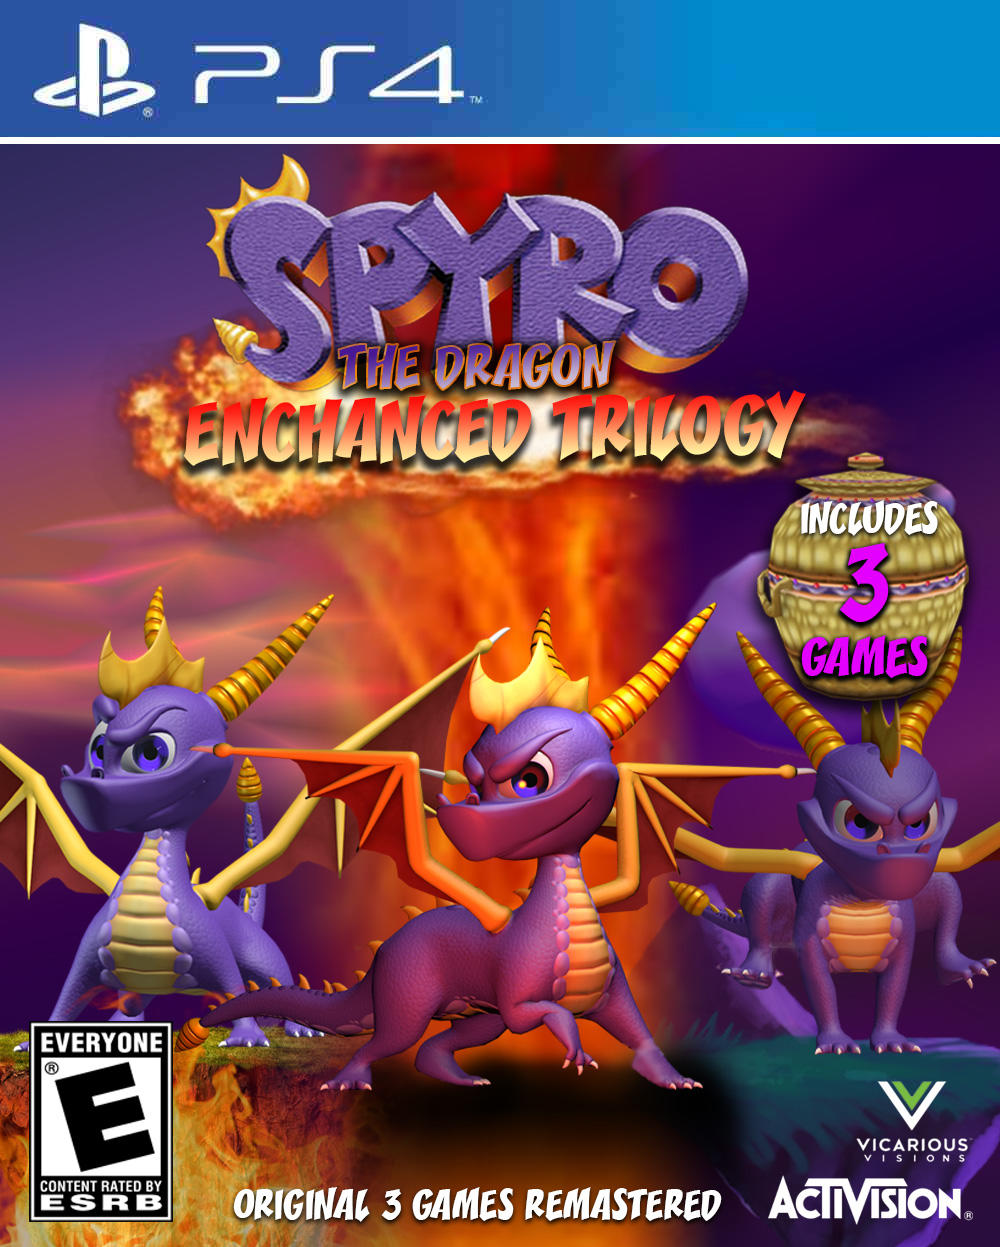 spyro the dragon enchanced trilogy ps4 cover gaming